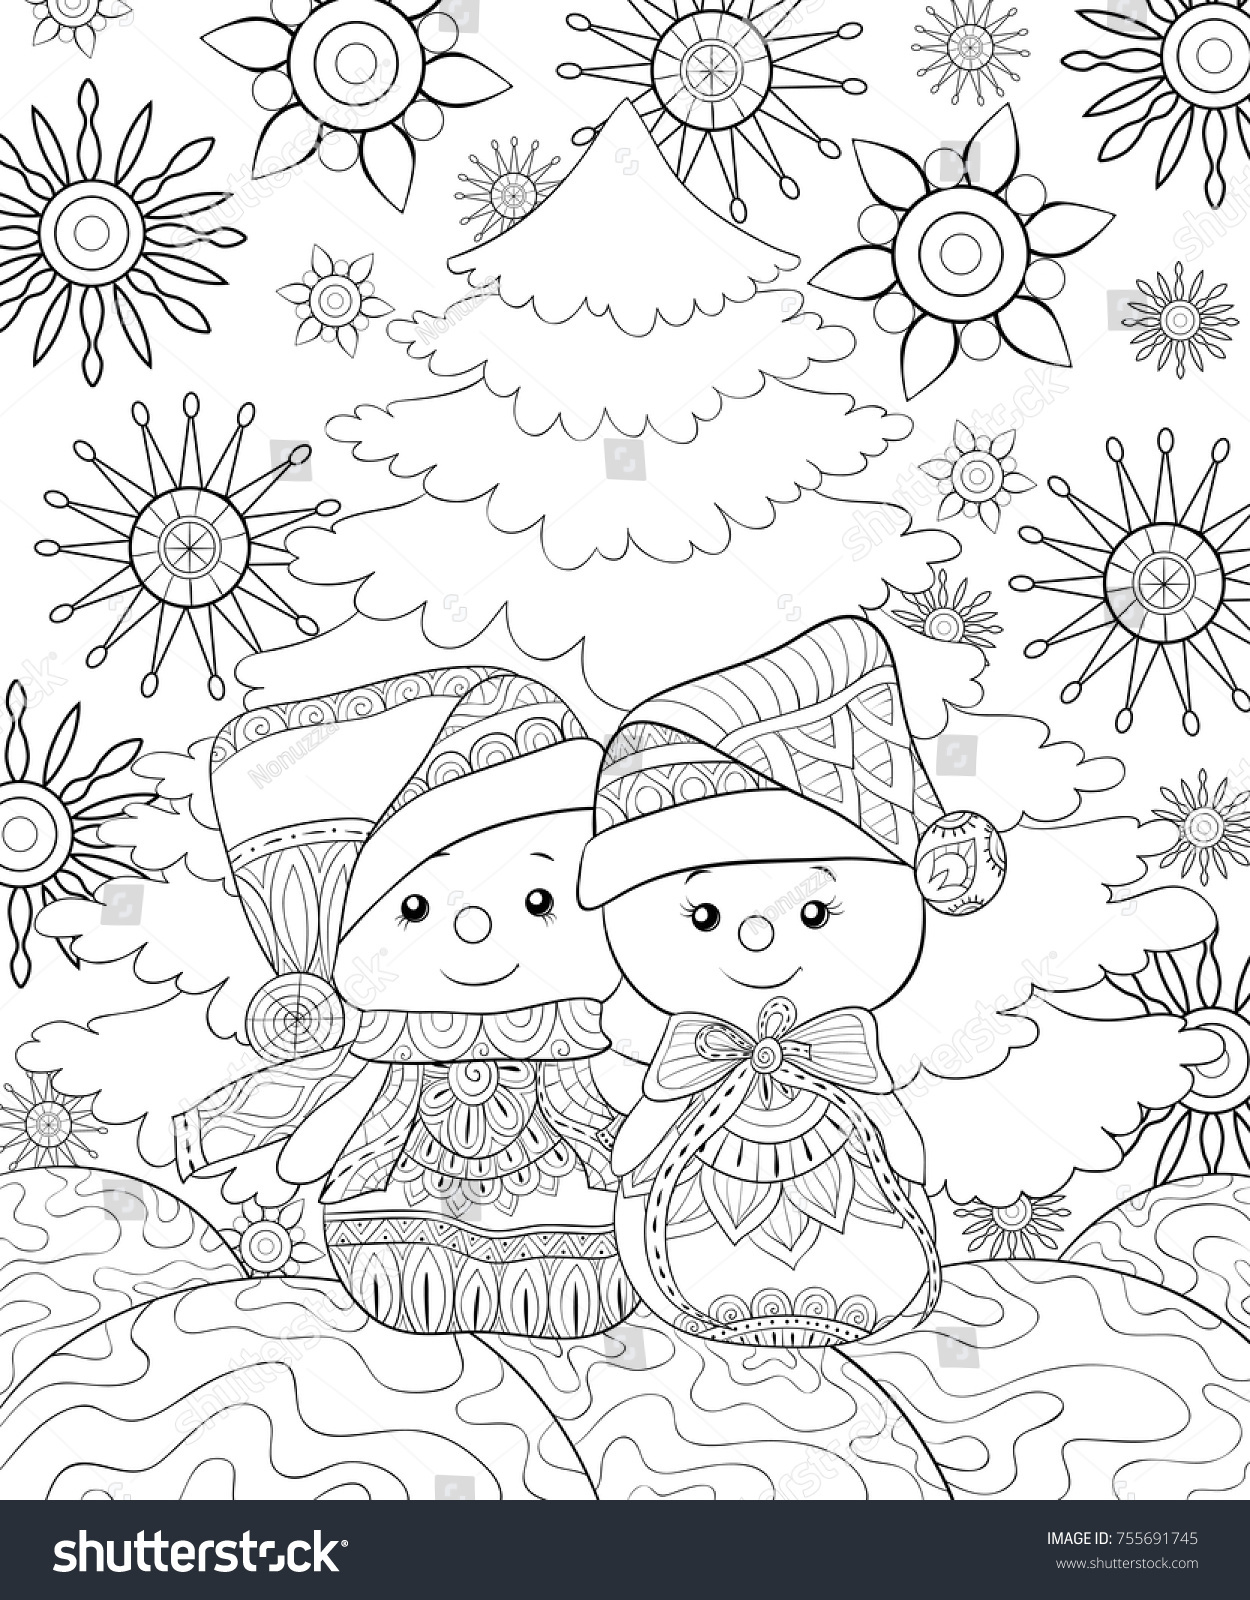 Adult Coloring Pagebook Pair Snowmen On Stock Vector (Royalty Free ...